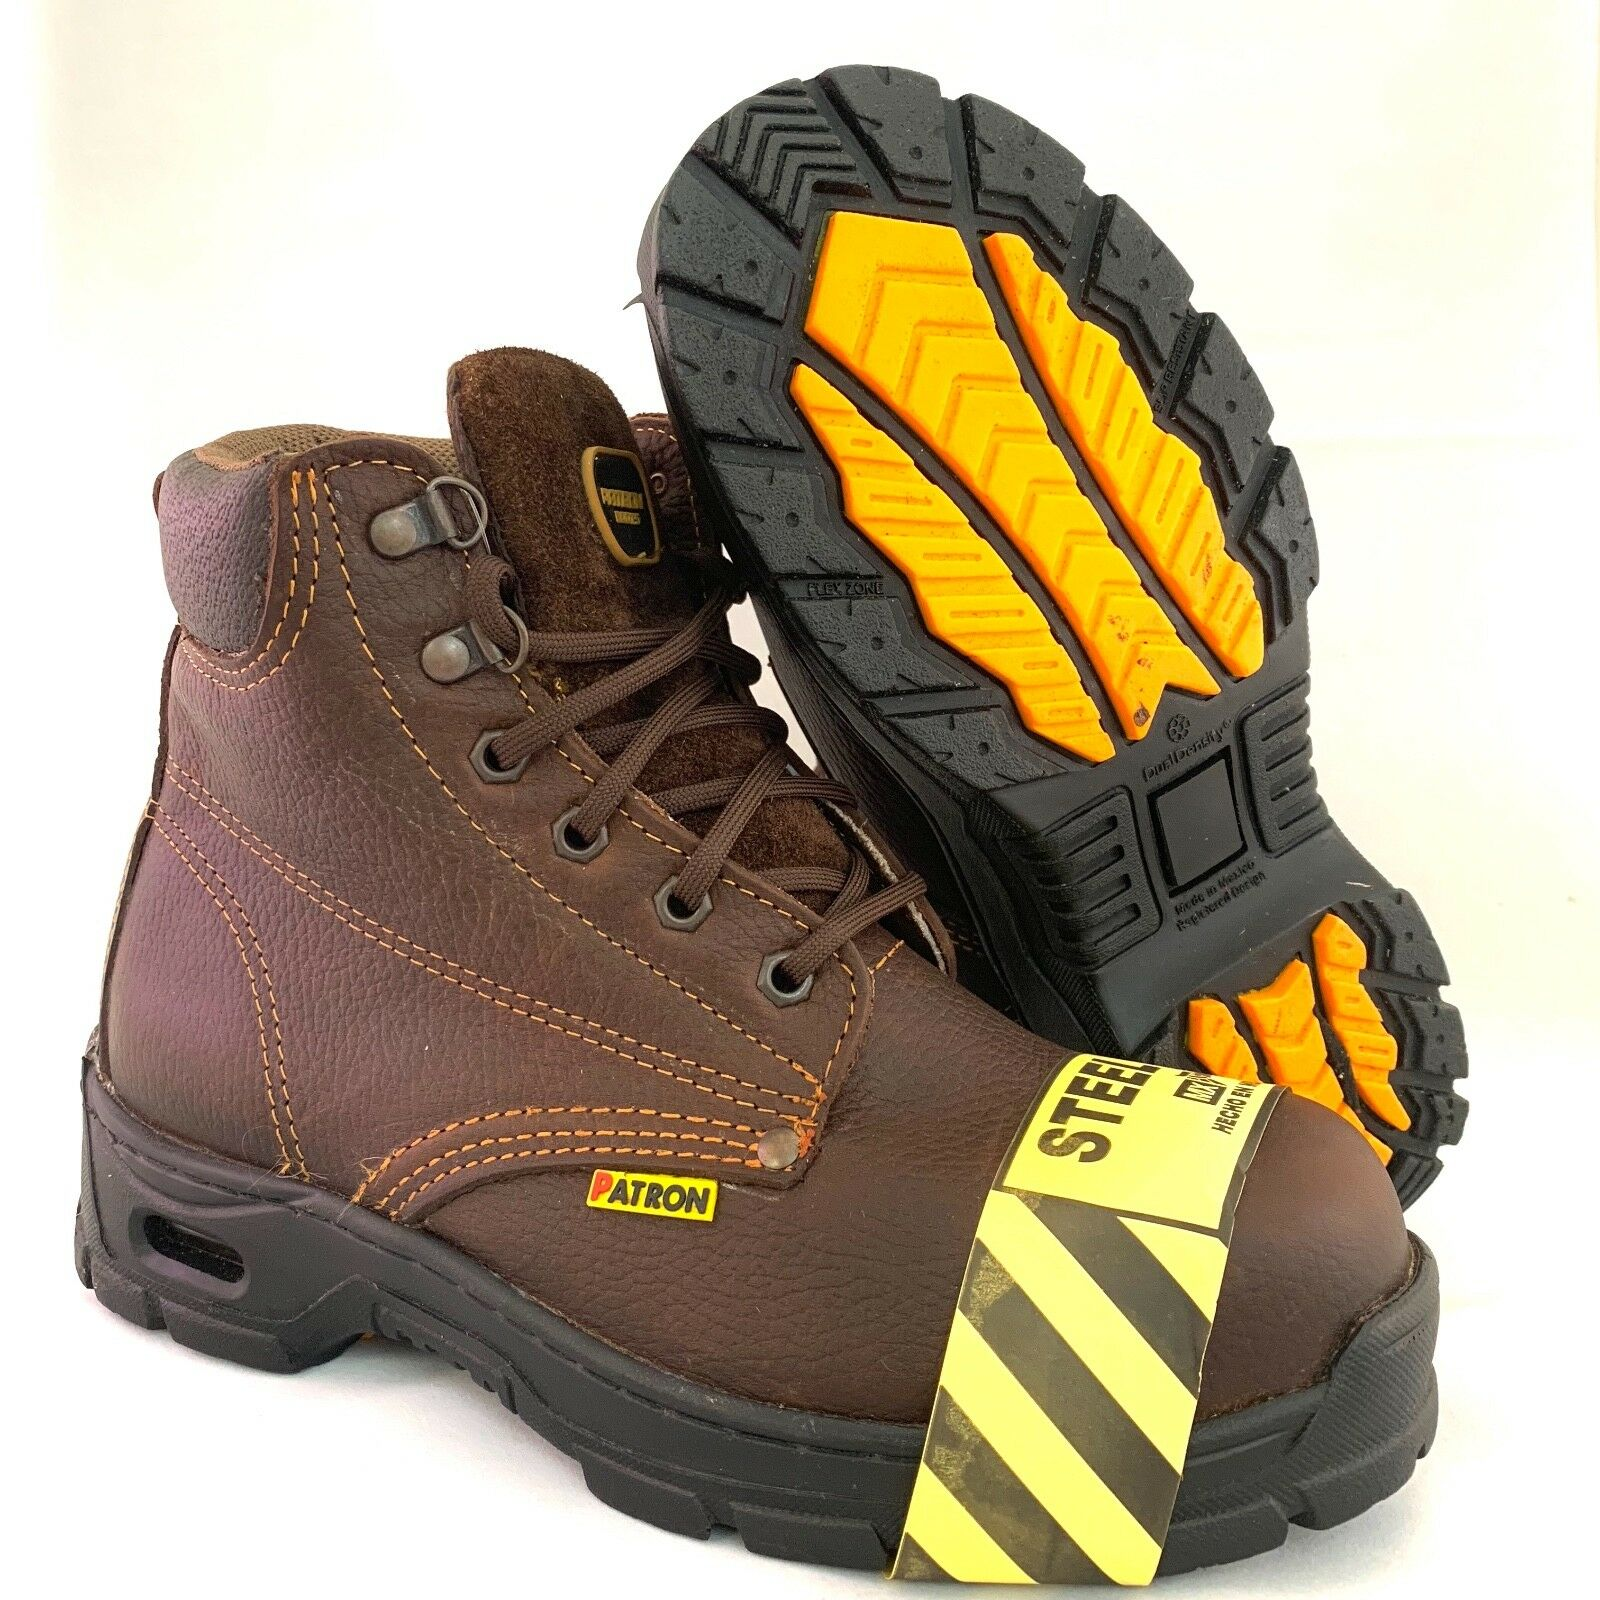 MEN'S WORK BOOTS STEEL TOE GENUINE LEATHER LACE UP SAFETY OIL RESISTANT BROWN